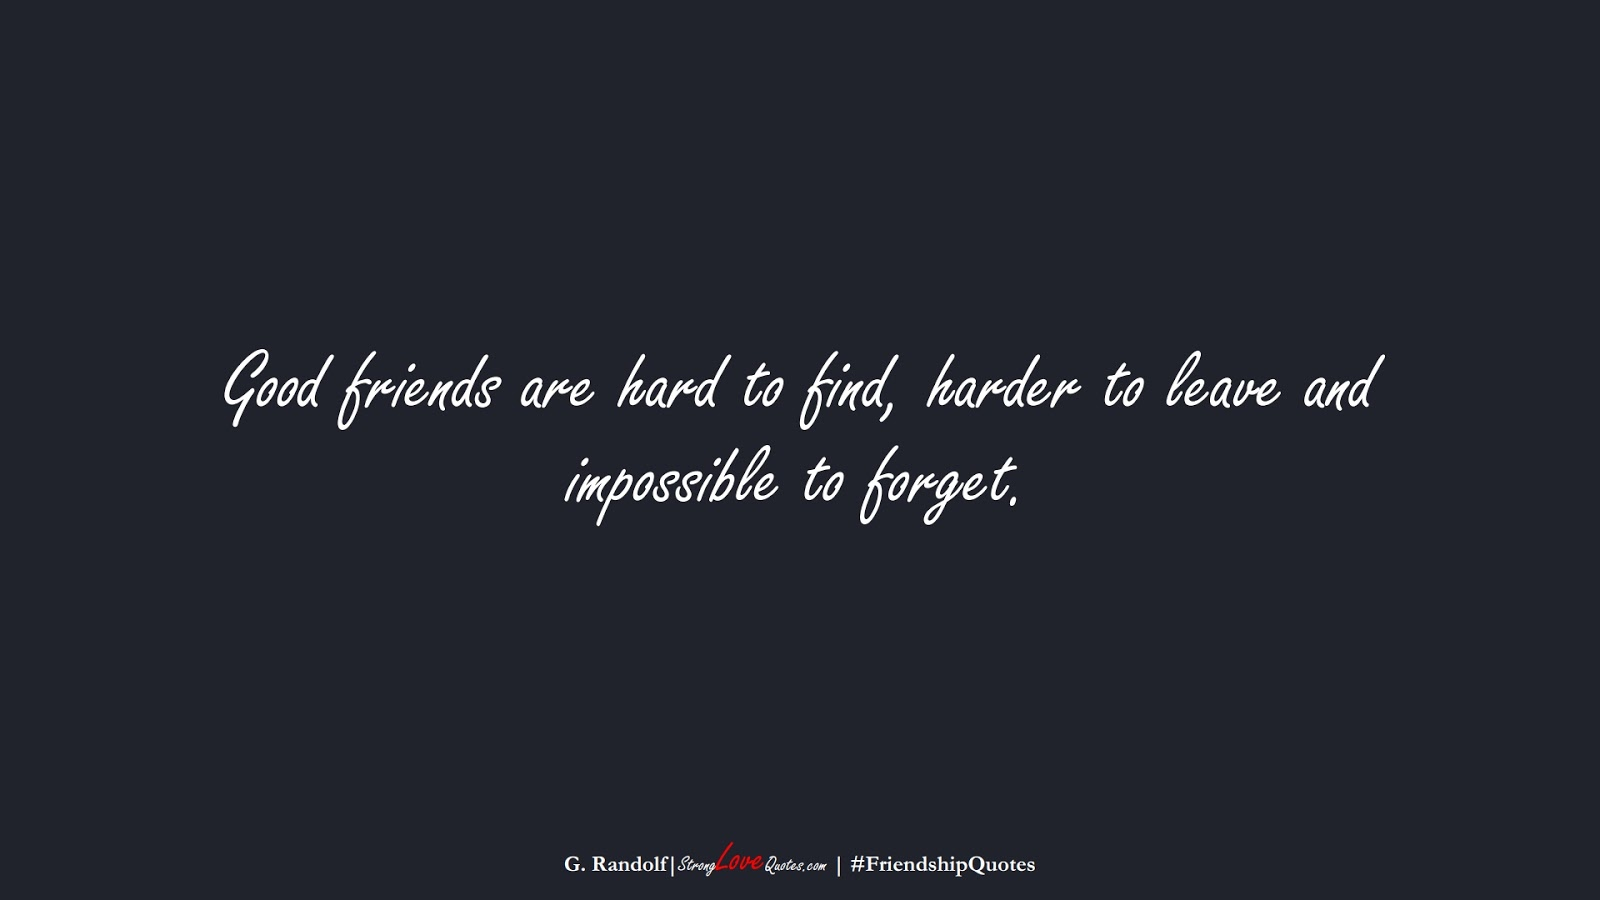 Good friends are hard to find, harder to leave and impossible to forget. (G. Randolf);  #FriendshipQuotes